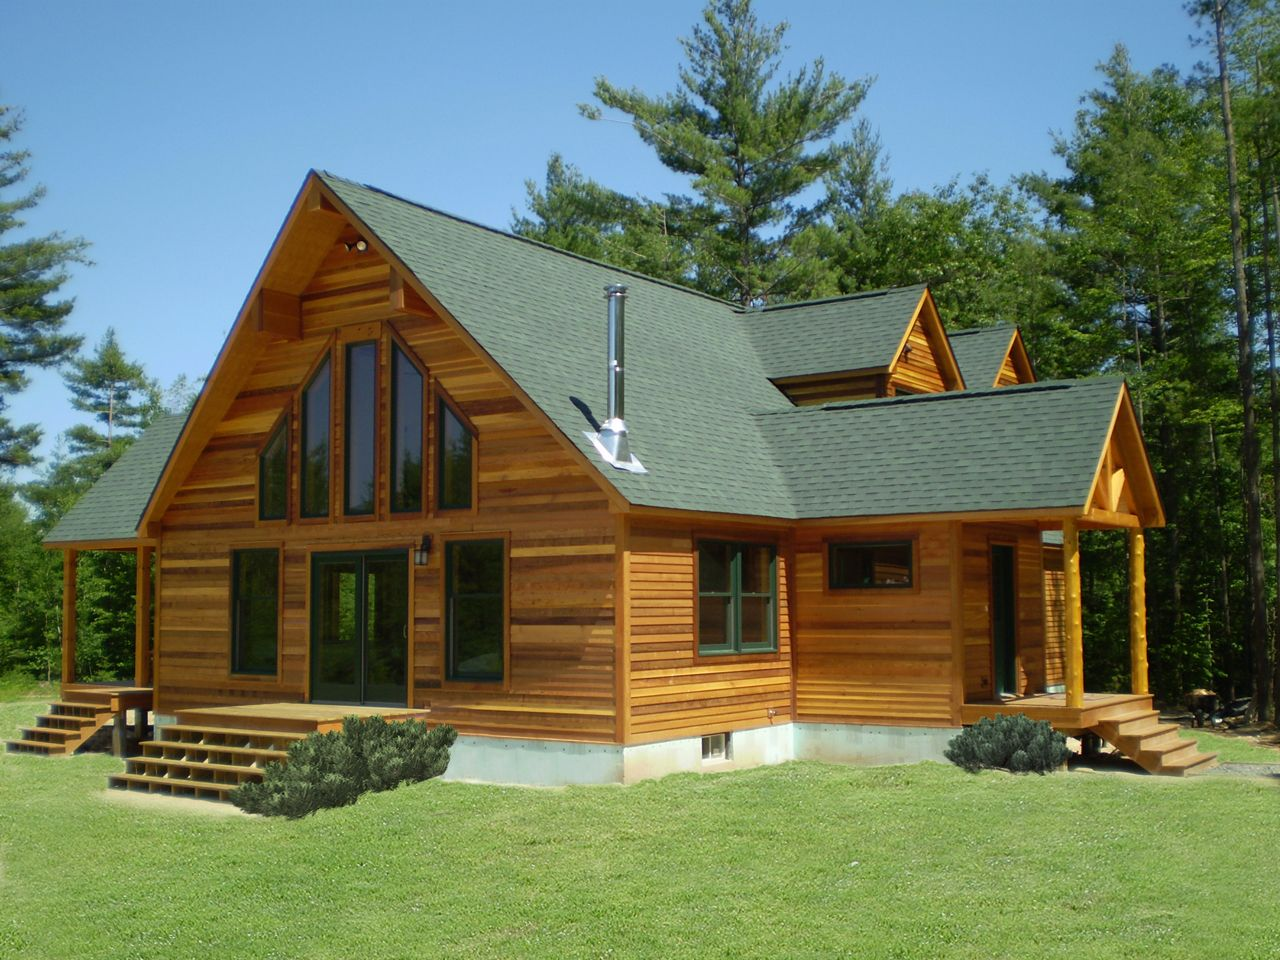 modular homes is to deliver affordable energy efficient custom